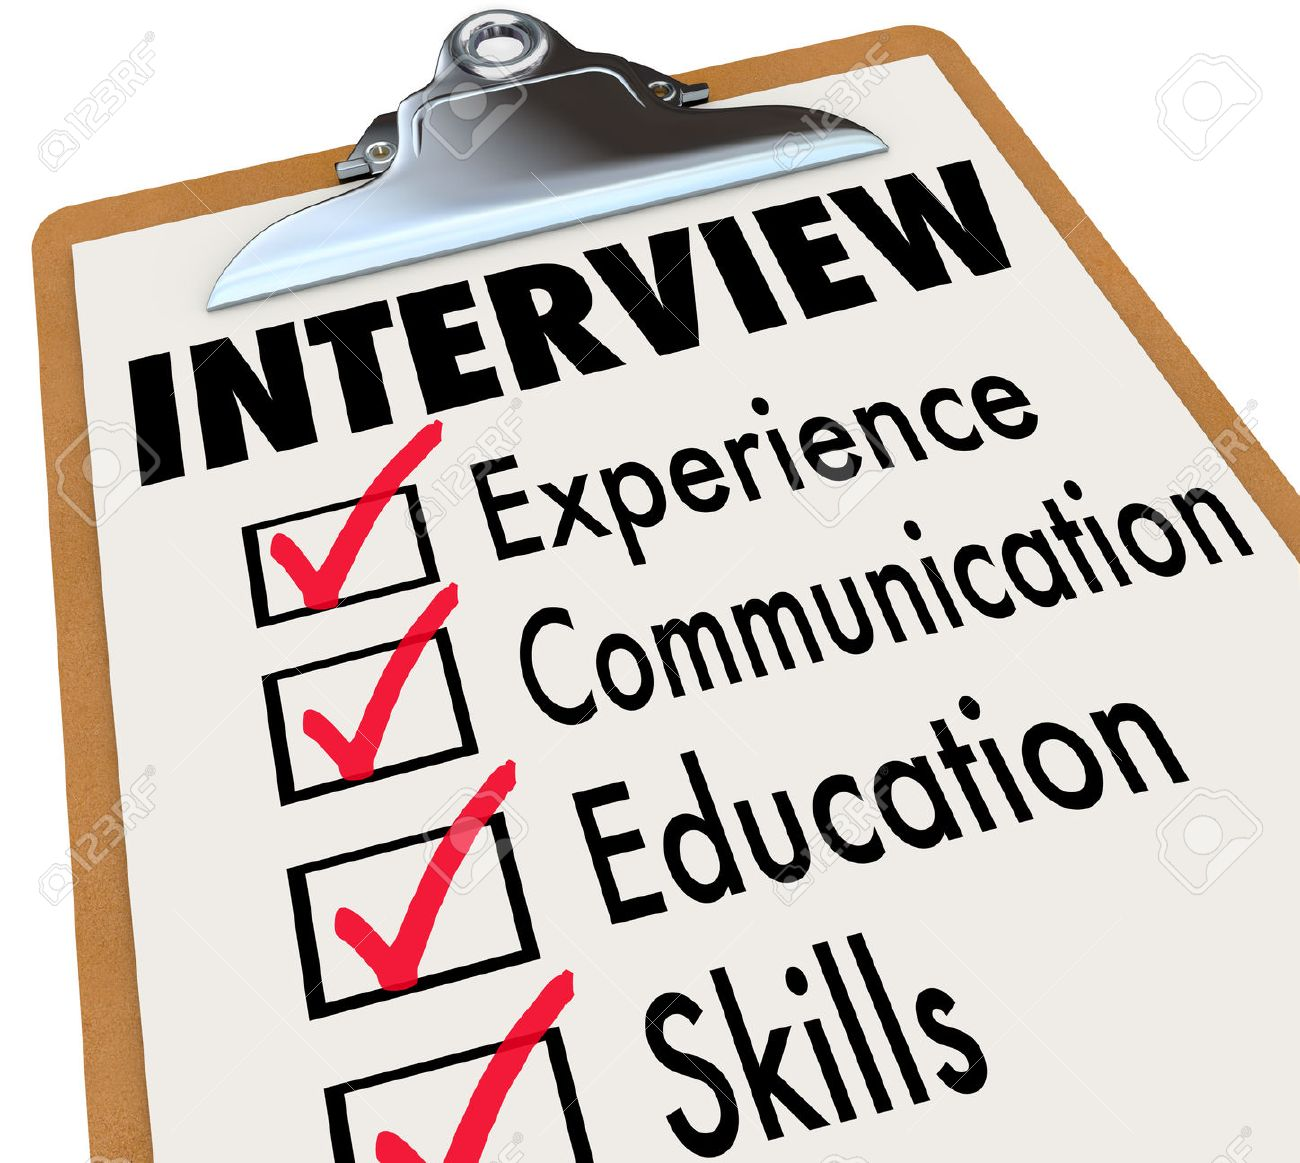 interview qualifications a job candidate must possess on a interview qualifications a job candidate must possess on a checklist clipboard including experience communication